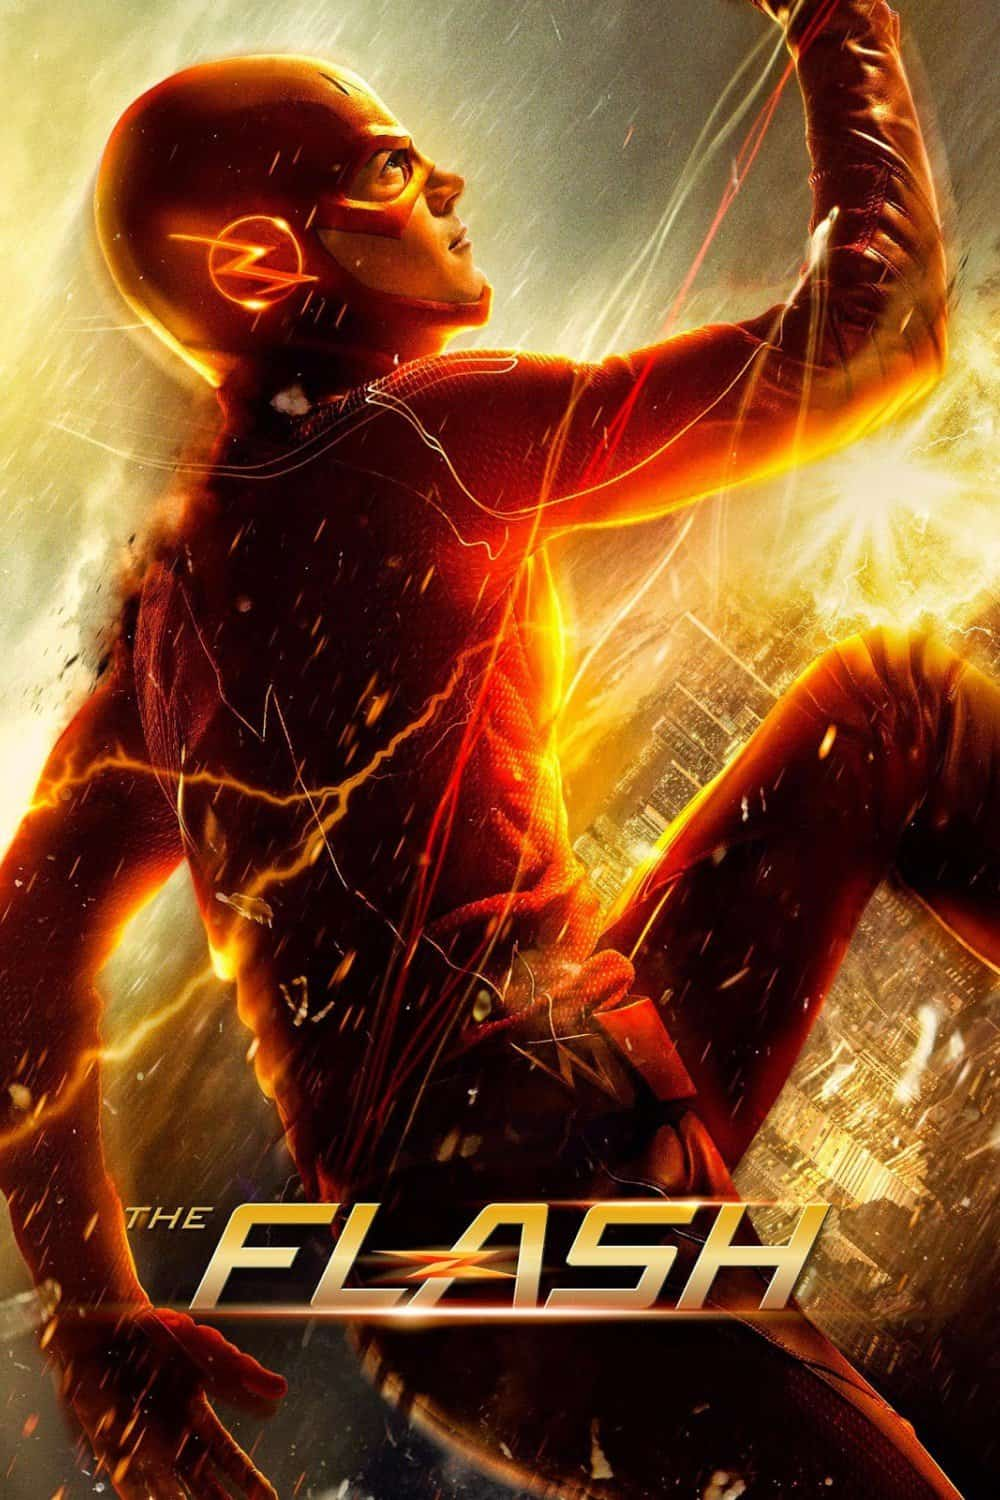 The Flash, 2014